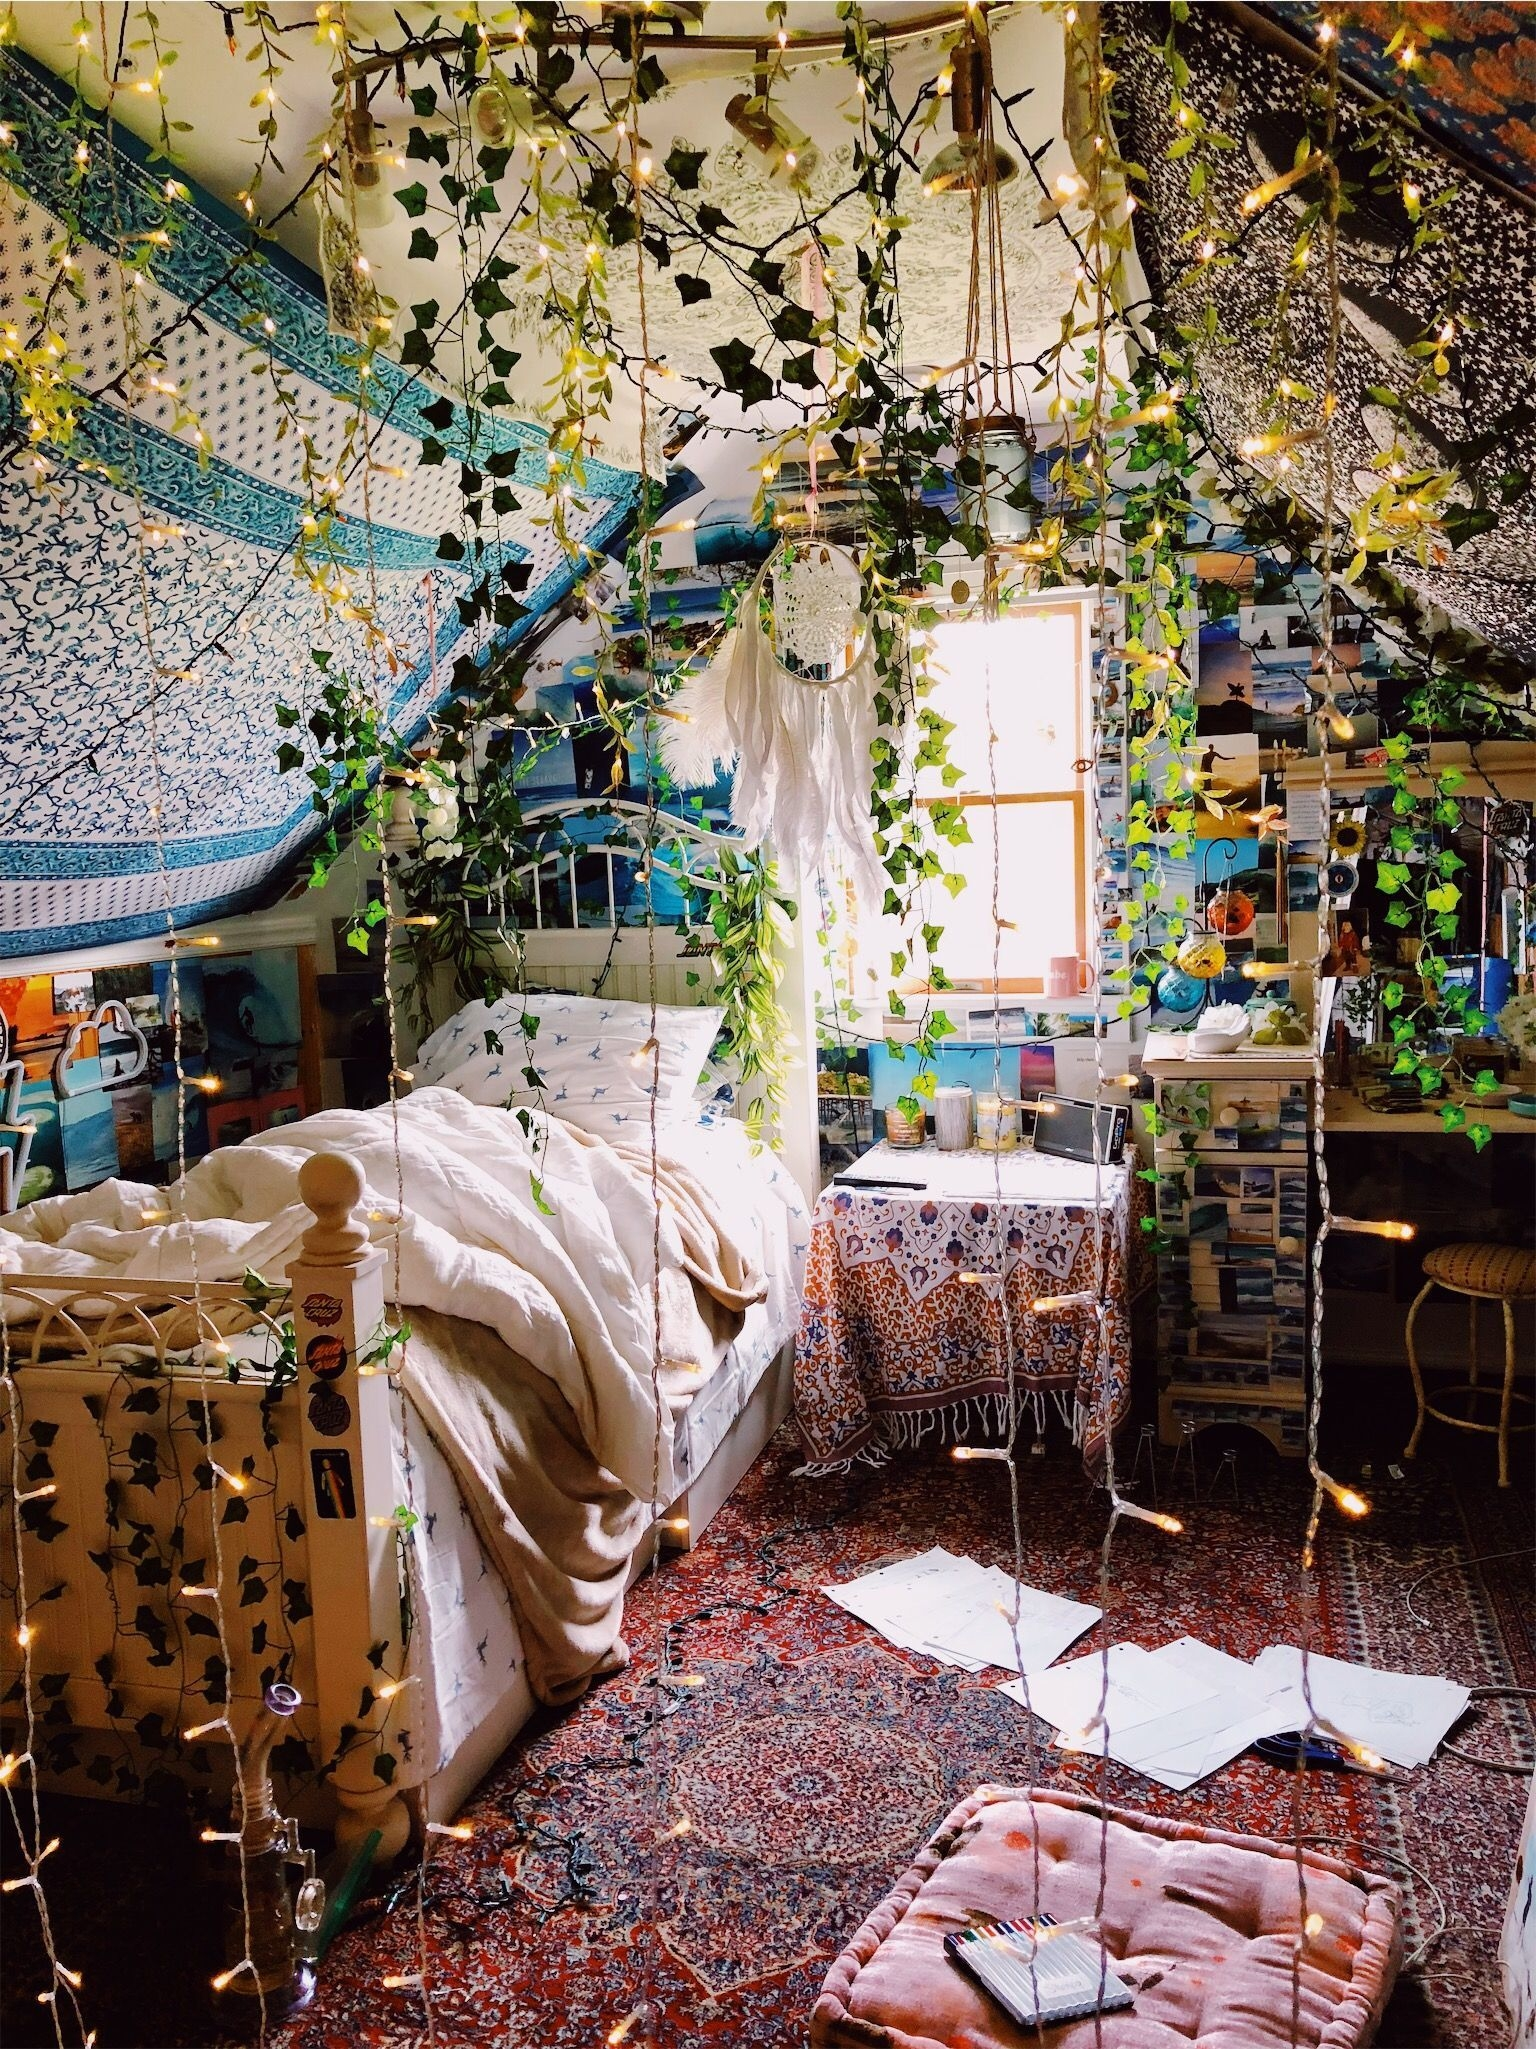 Extraordinary Cool Wall Designs for Rooms On Wonderful Good Carpet Bedroom Aesthetic Tips Your Bedroom On Cool Wall Designs for Rooms